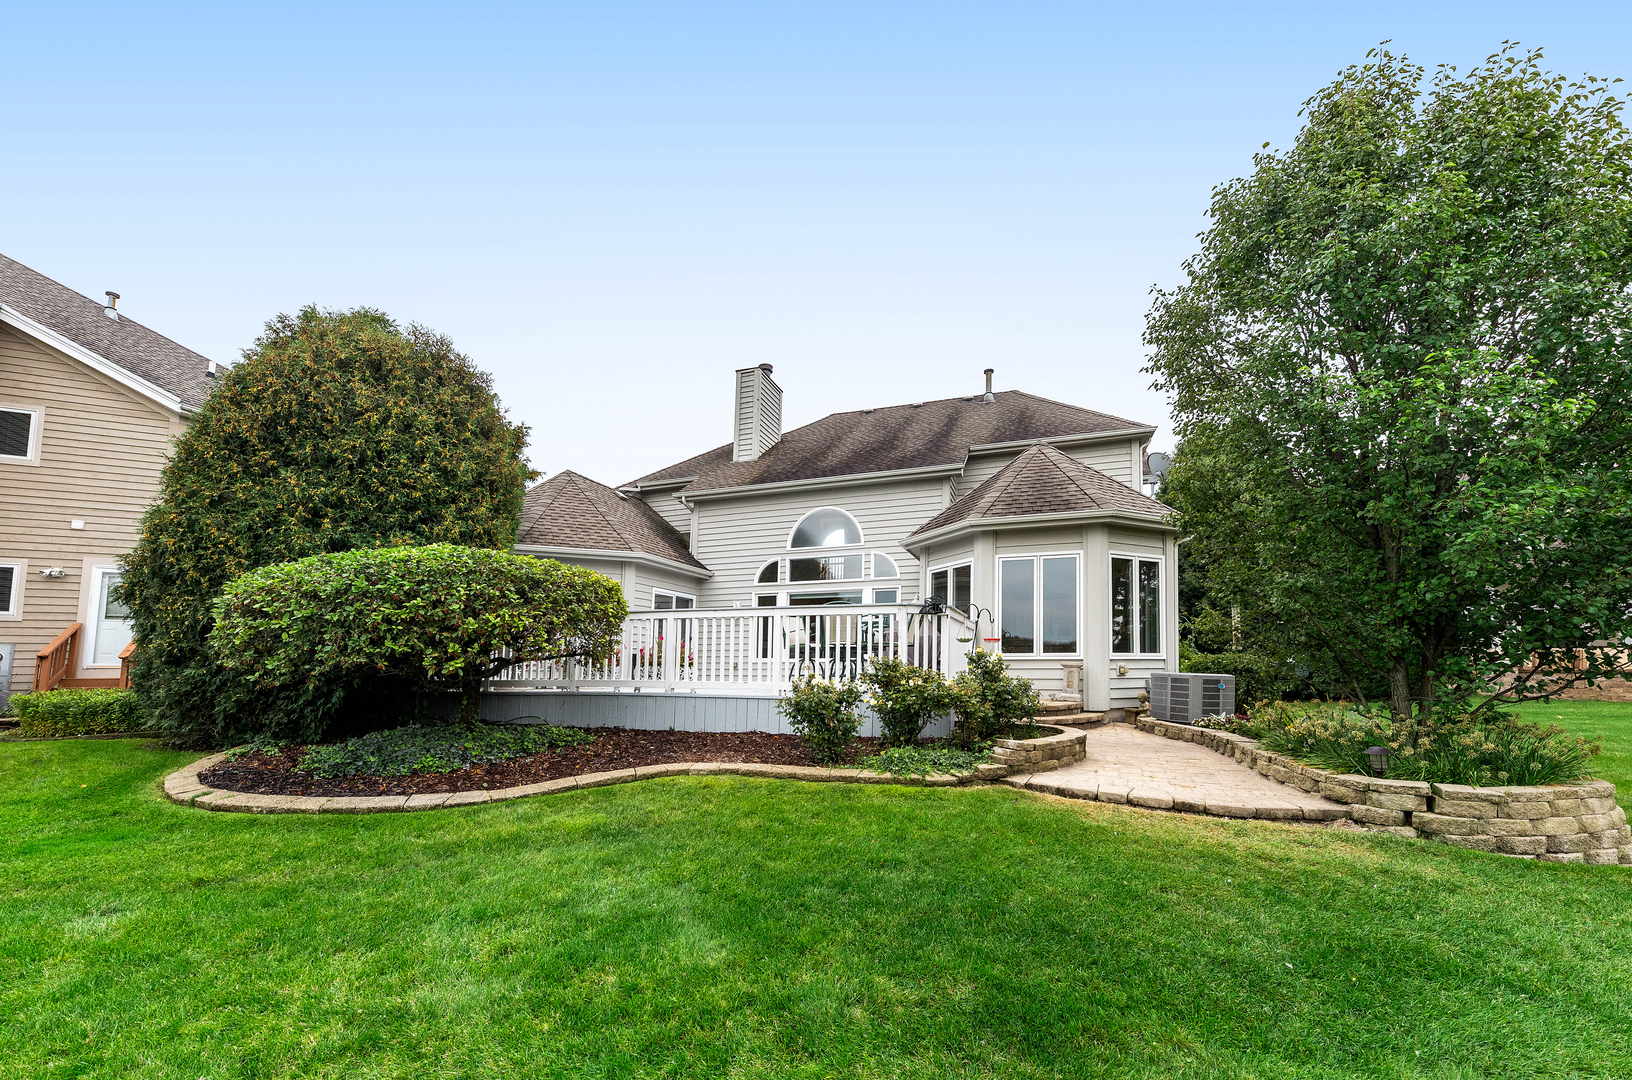 $625,000 - 4Br/3Ba -  for Sale in White Eagle, Naperville